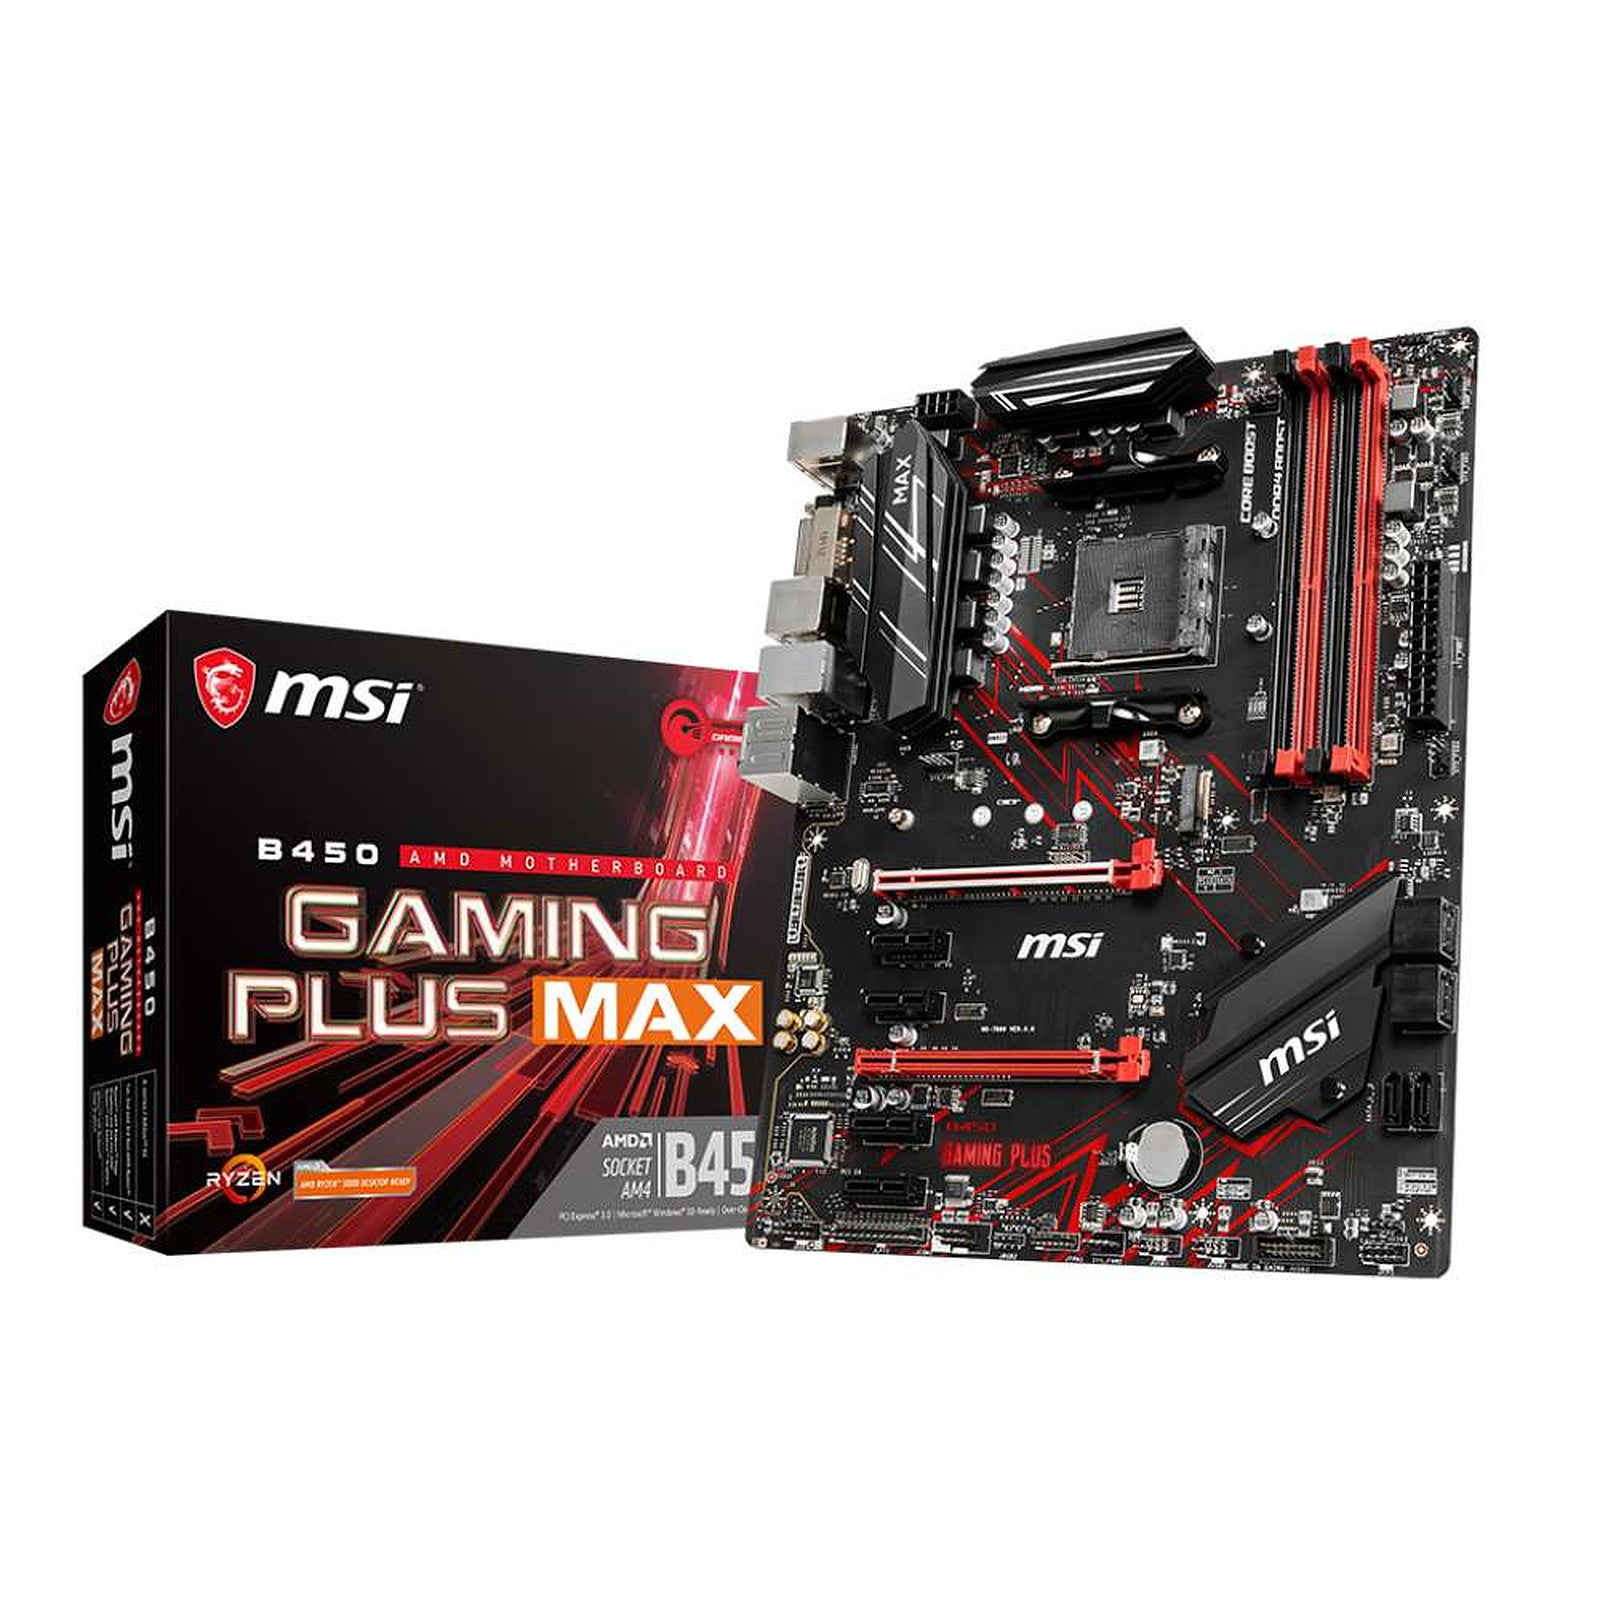 MSI B450 GAMING PLUS MAX - Carte mère ATX Socket AM4 AMD B450 - 4x DDR4 - SATA 6Gb/s + M.2 - USB 3.1 - 1x PCI-Express 3.0 16x + 1x PCI-Express 2.0 16x